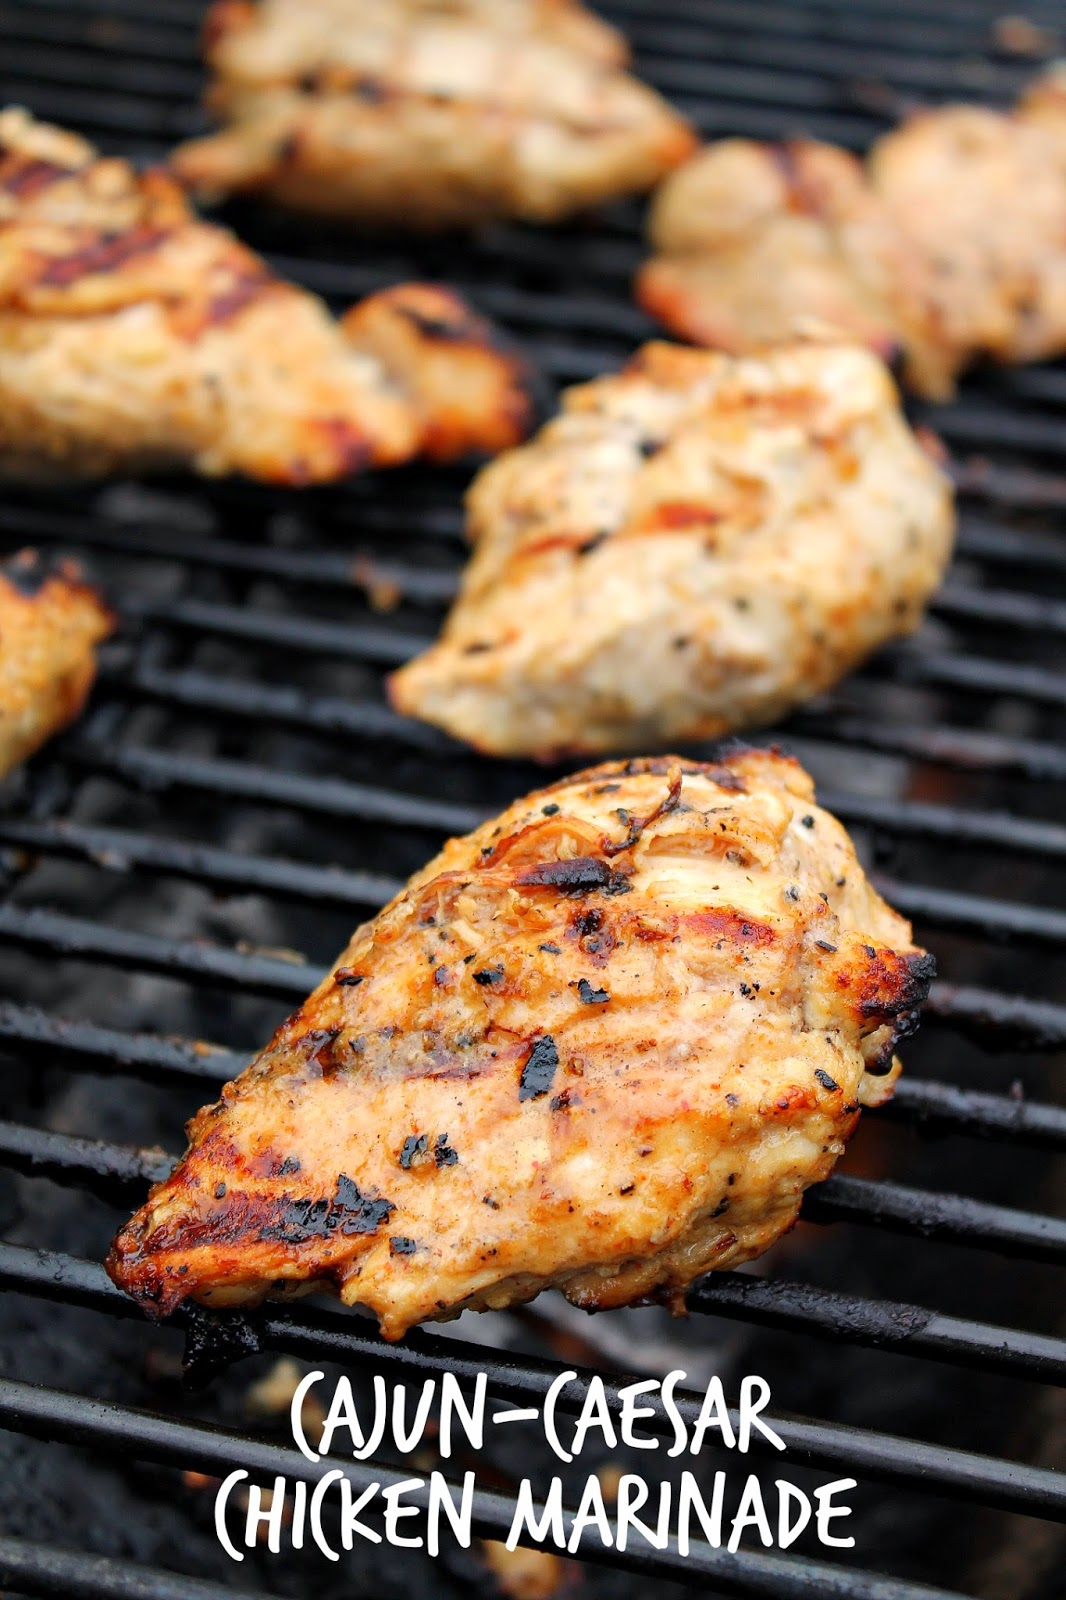 Cajun-Caesar Chicken Marinade via @labride